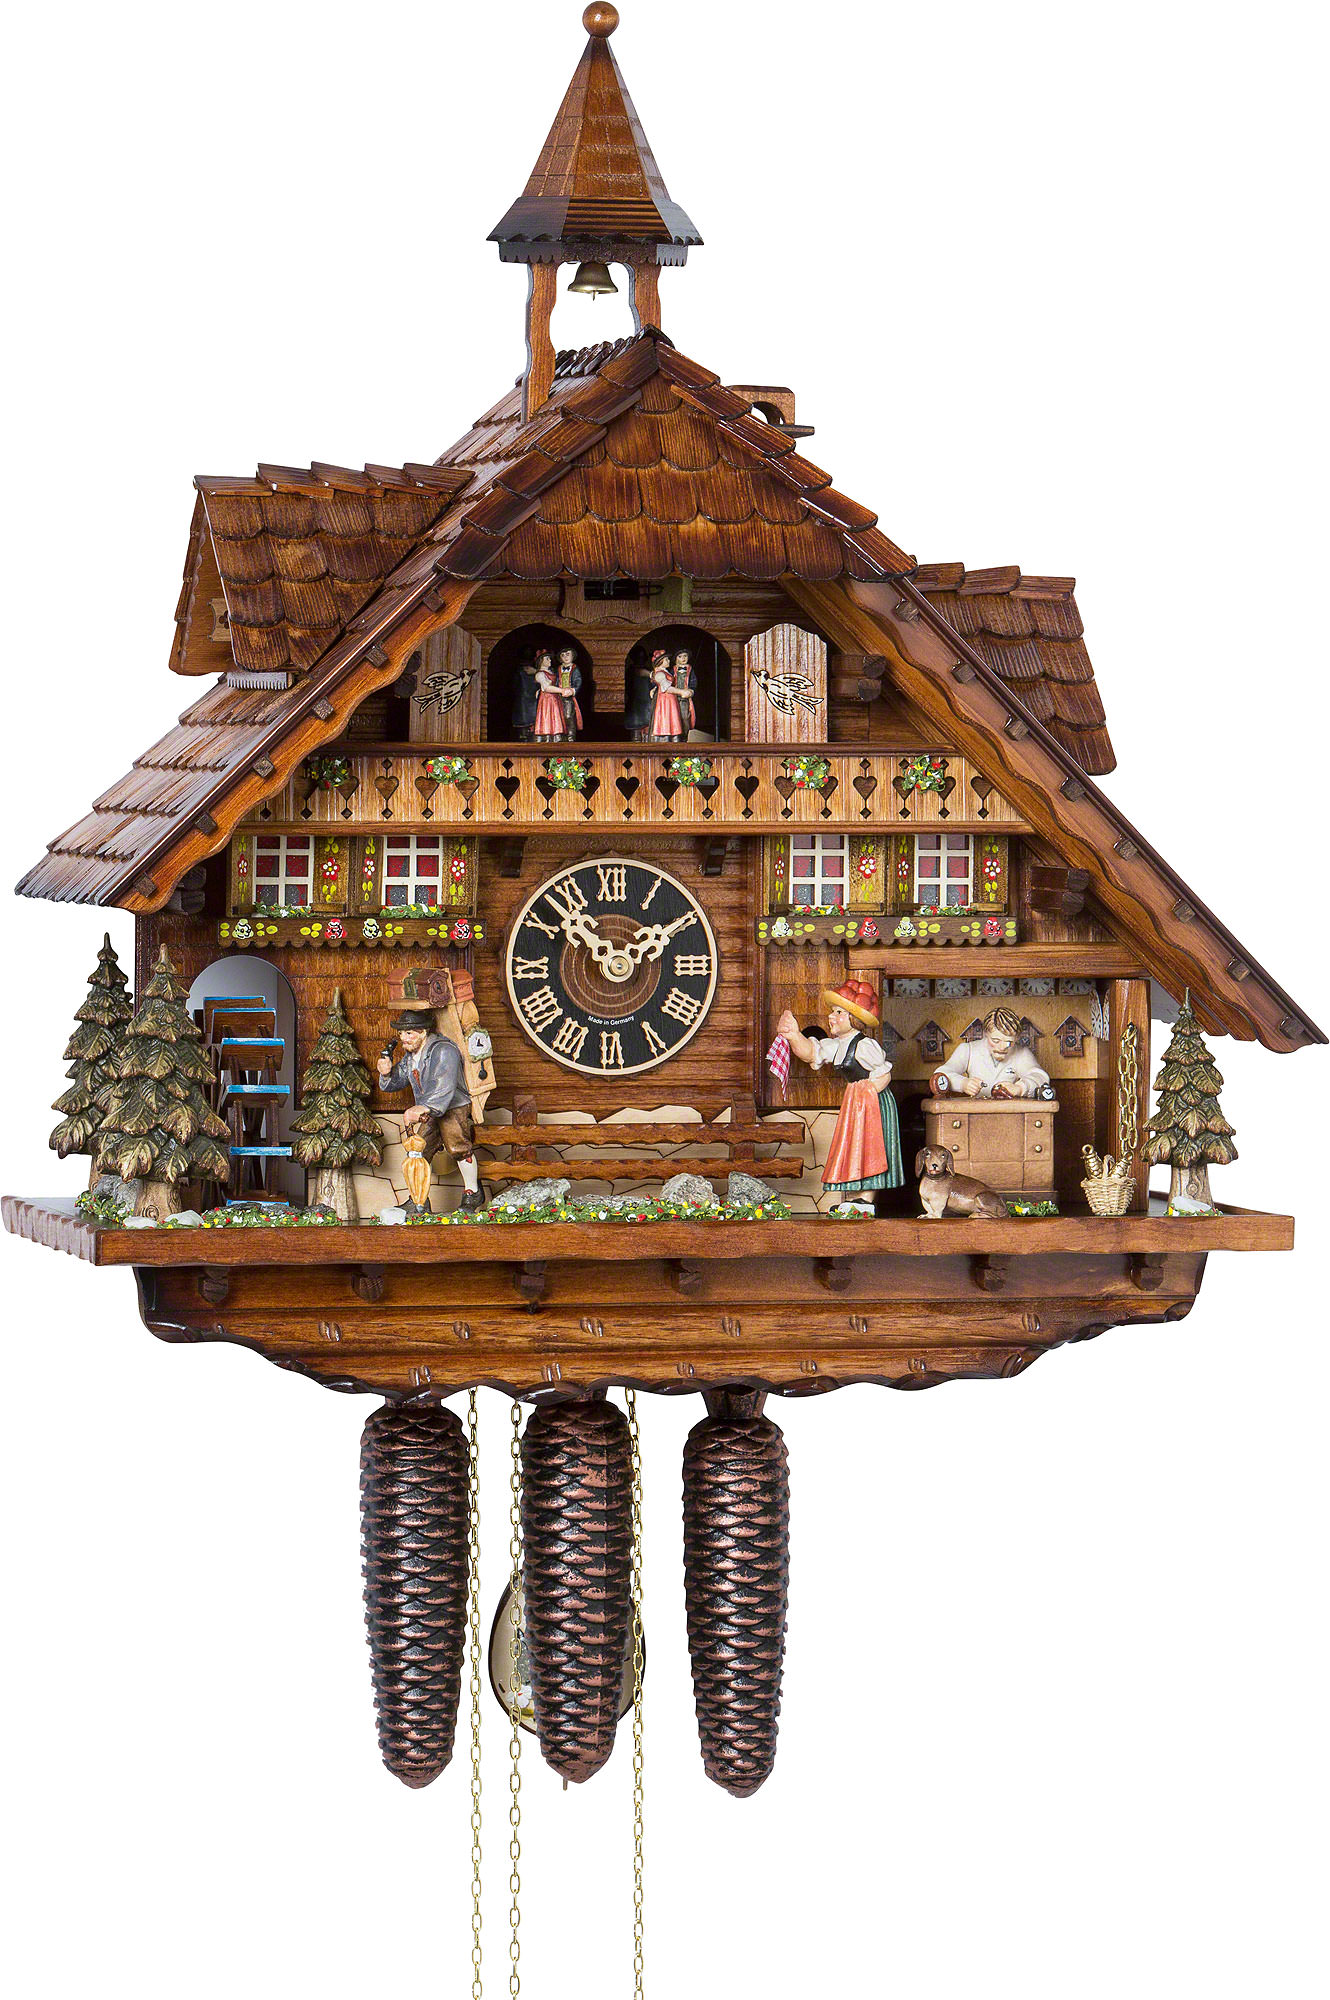 cuckoo clock 8 day movement chalet style 55cm by h nes 03586206t. Black Bedroom Furniture Sets. Home Design Ideas